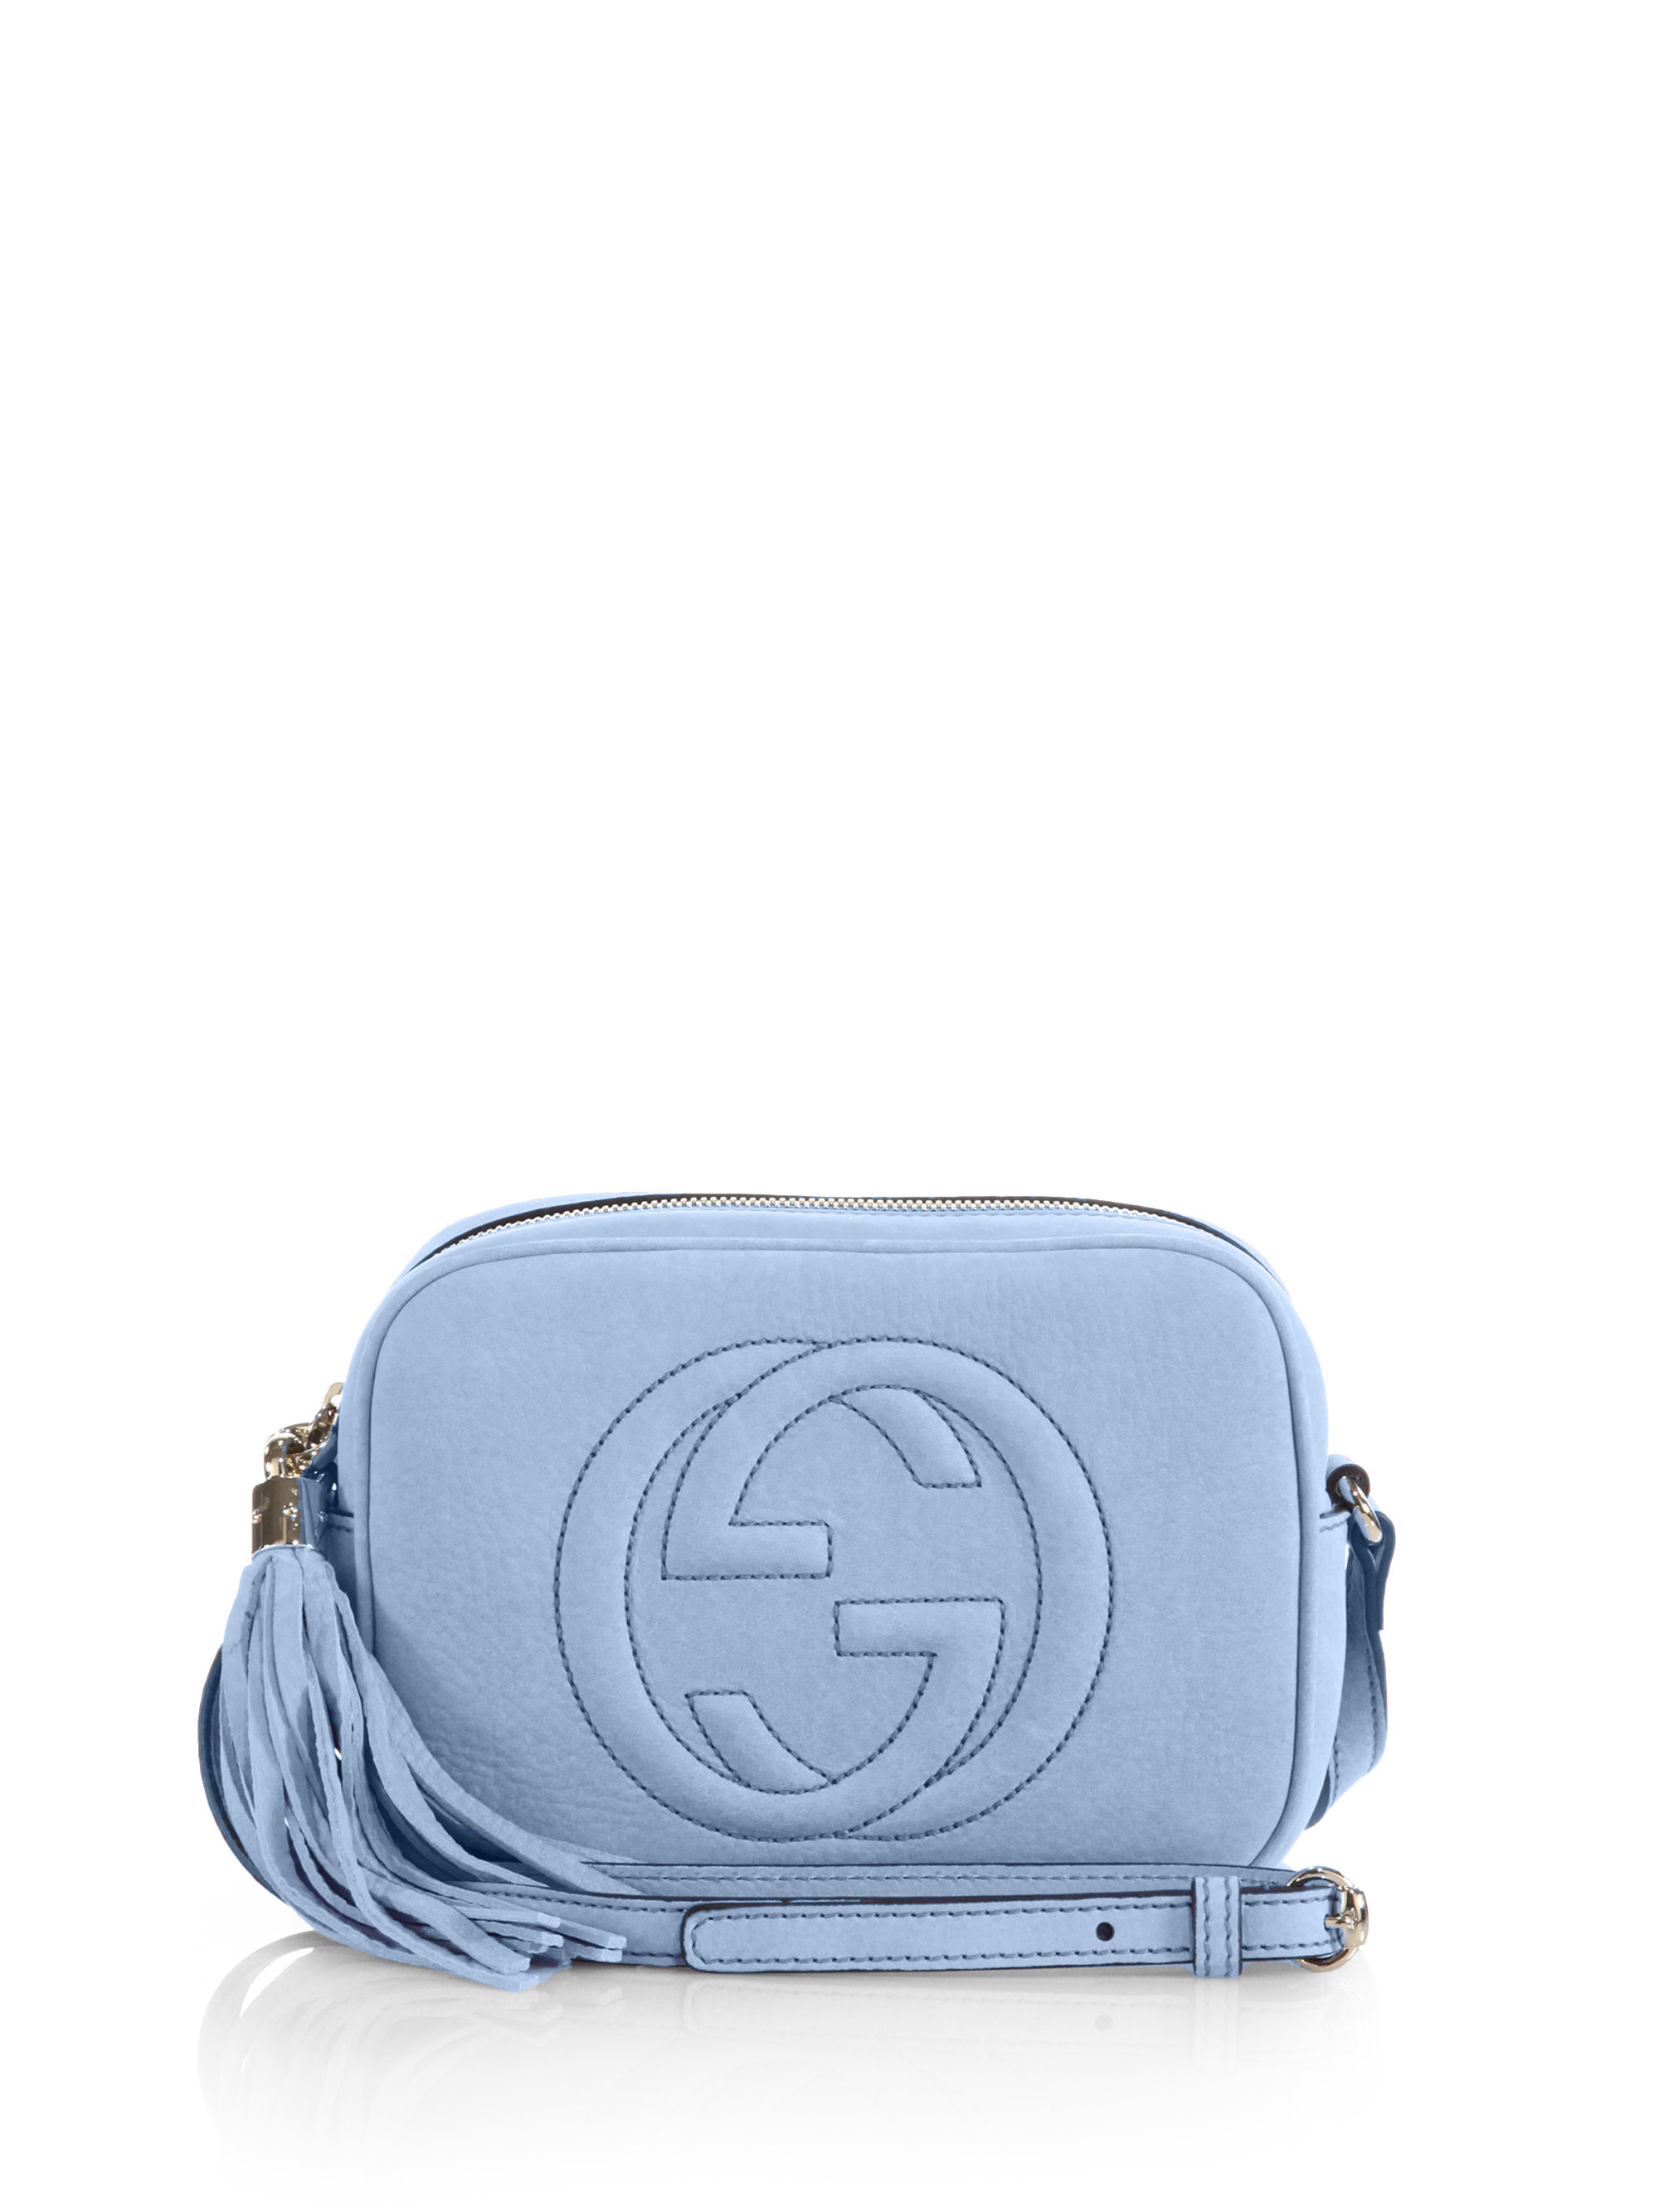 96b64f230d08 Gucci Soho Nubuck Leather Disco Bag in Blue - Lyst